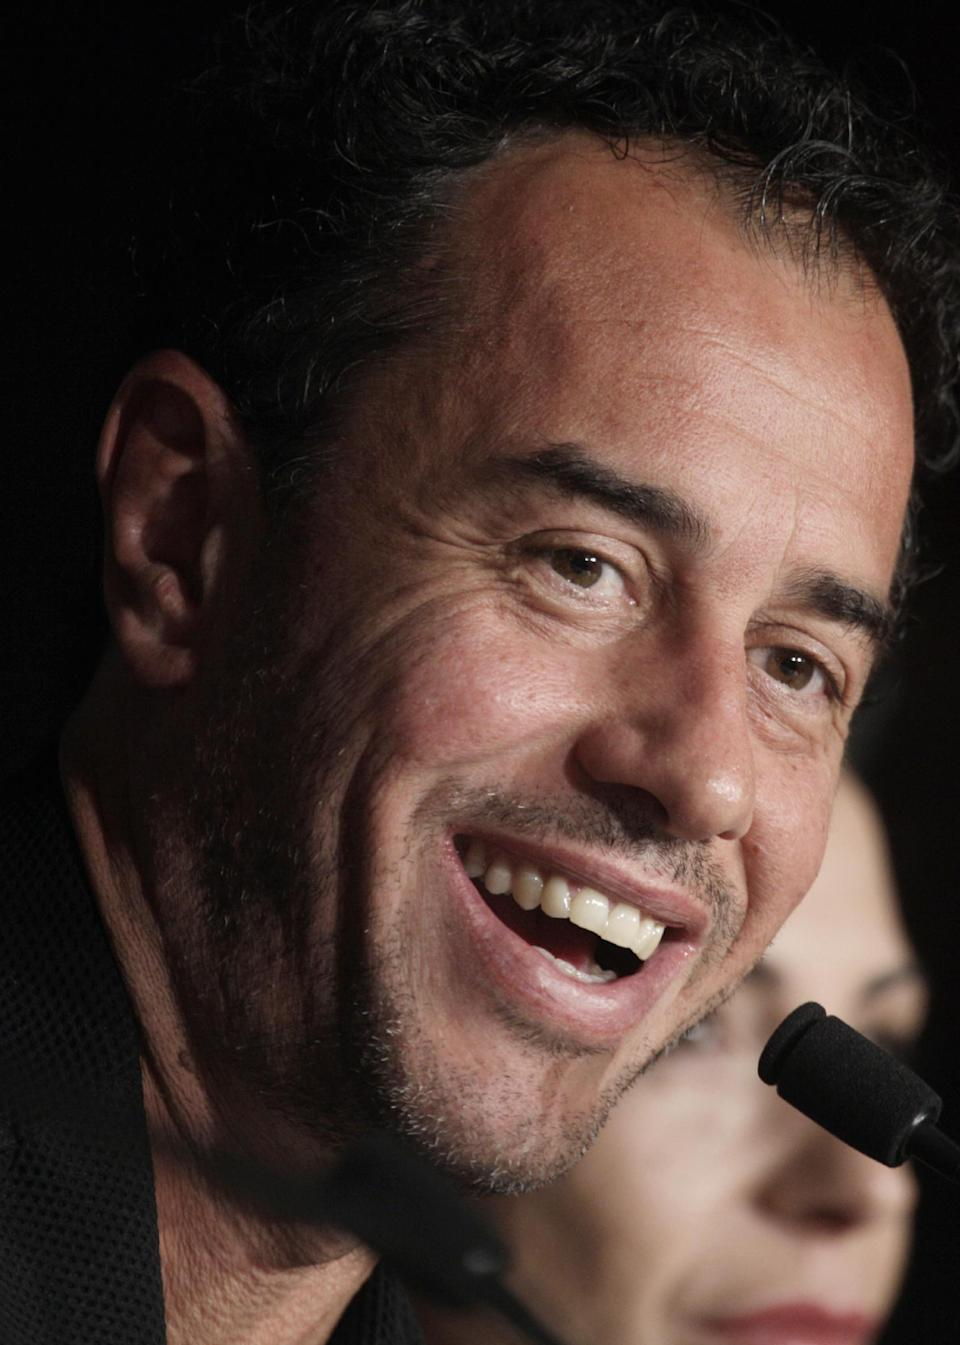 Director Matteo Garrone answers questions during a press conference for Reality at the 65th international film festival, in Cannes, southern France, Friday, May 18, 2012. (AP Photo/Virginia Mayo)